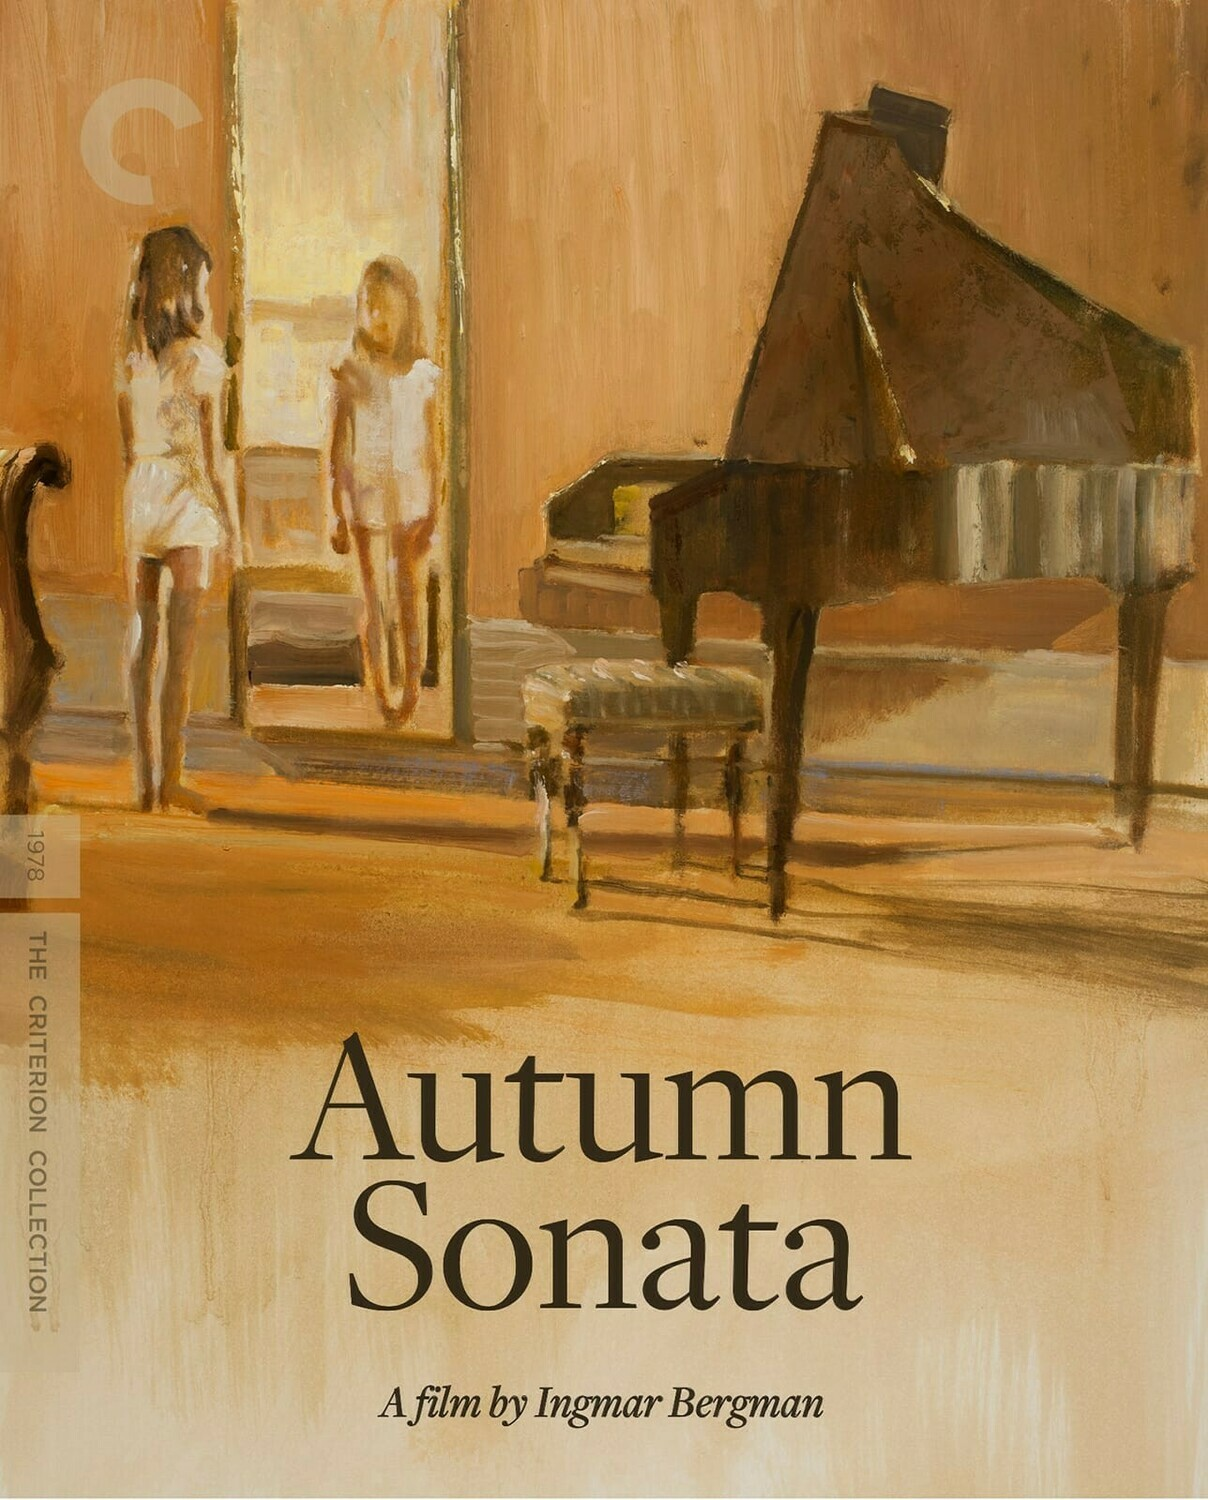 AUTUMN SONATA - BLURAY